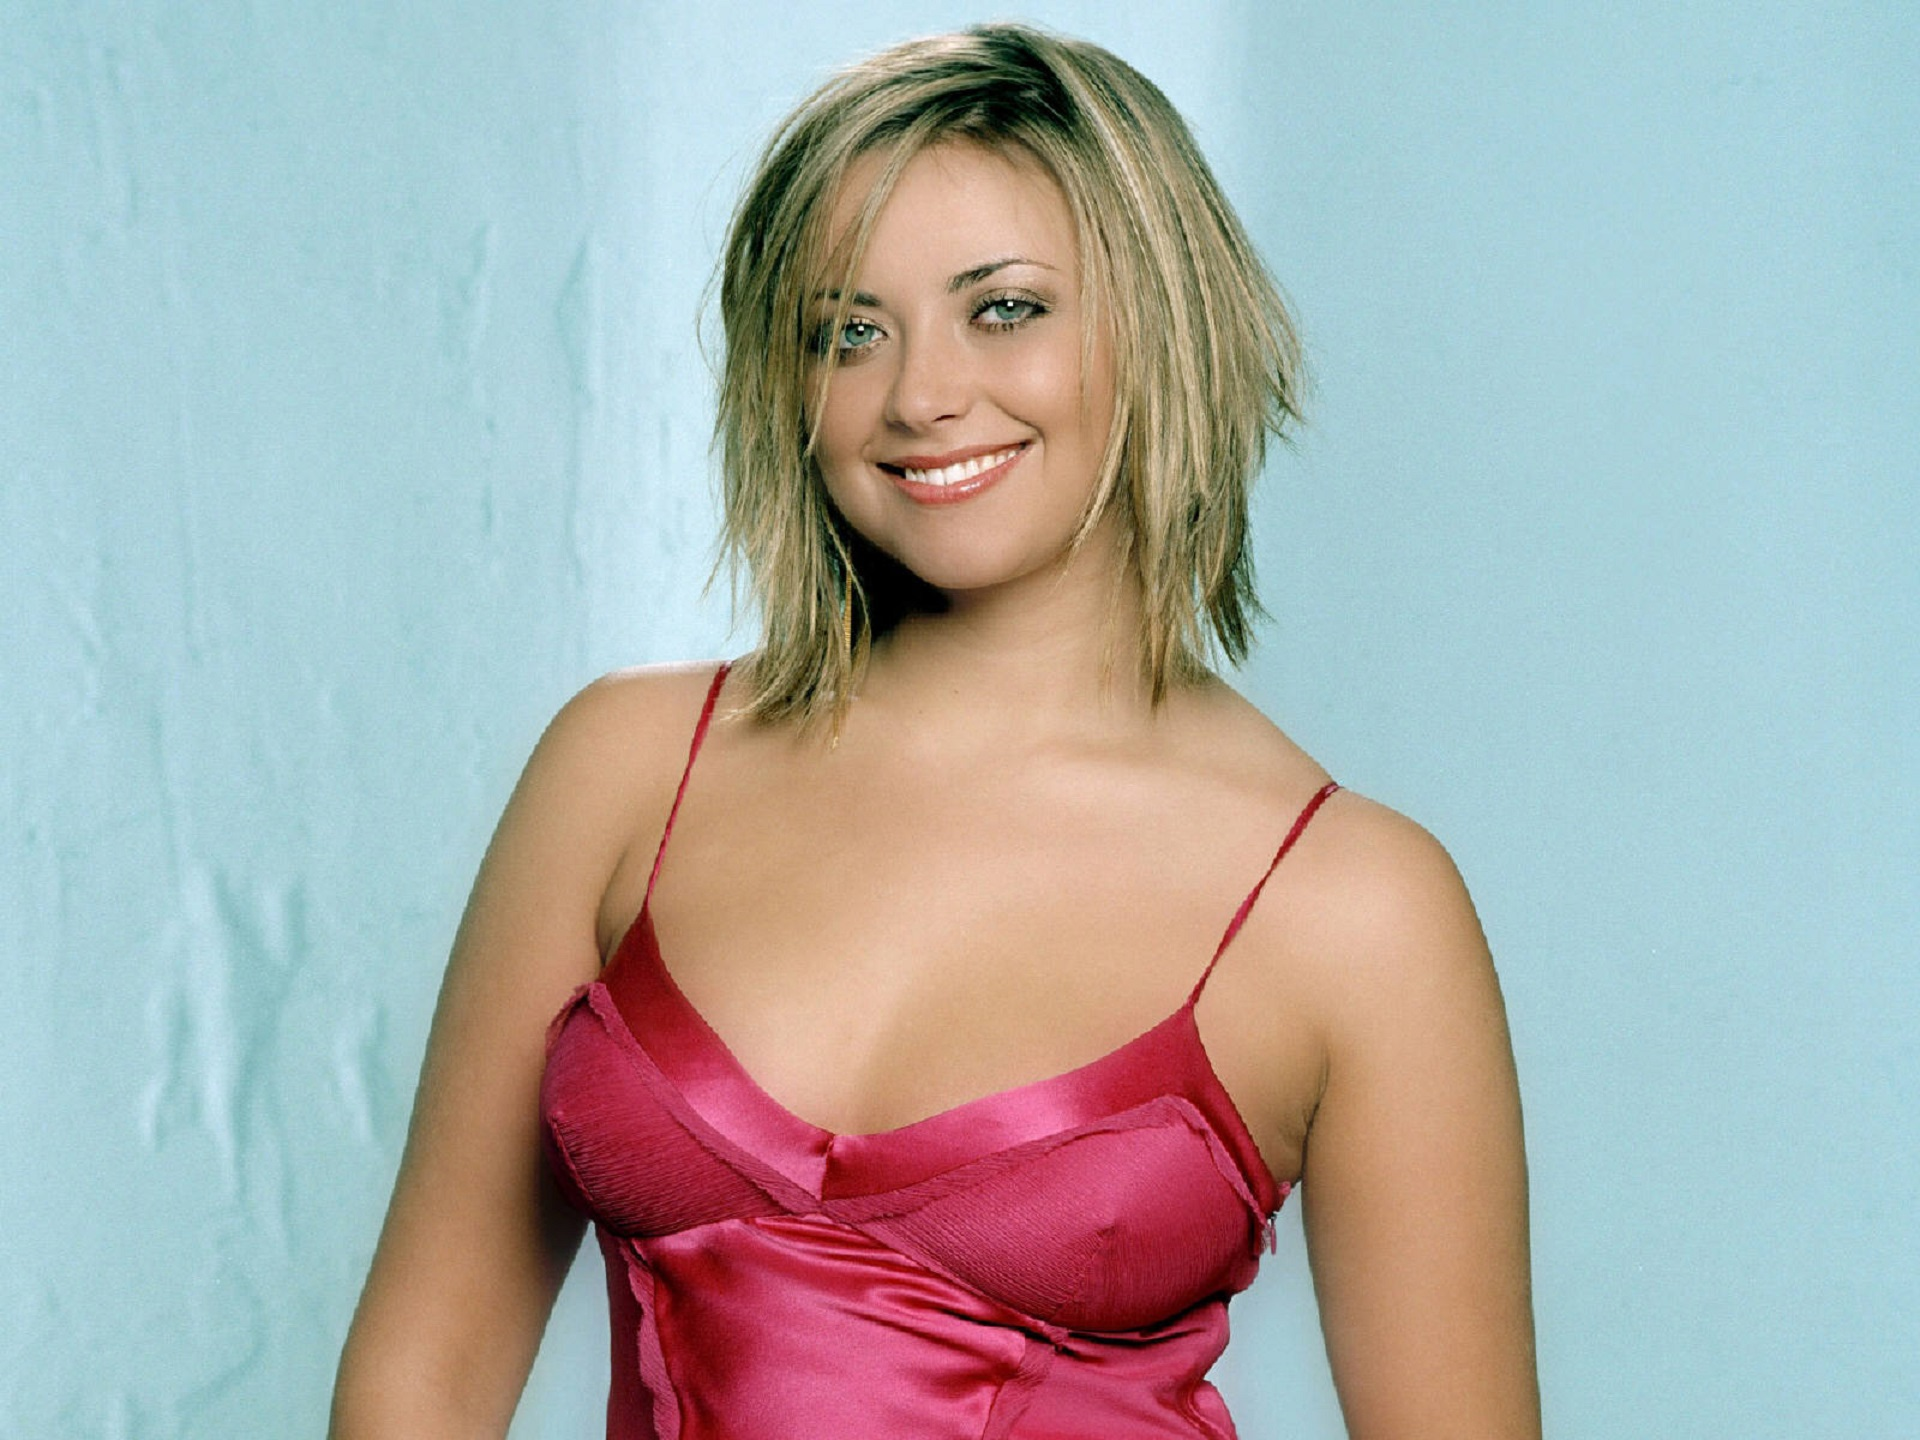 charlotte church - photo #24